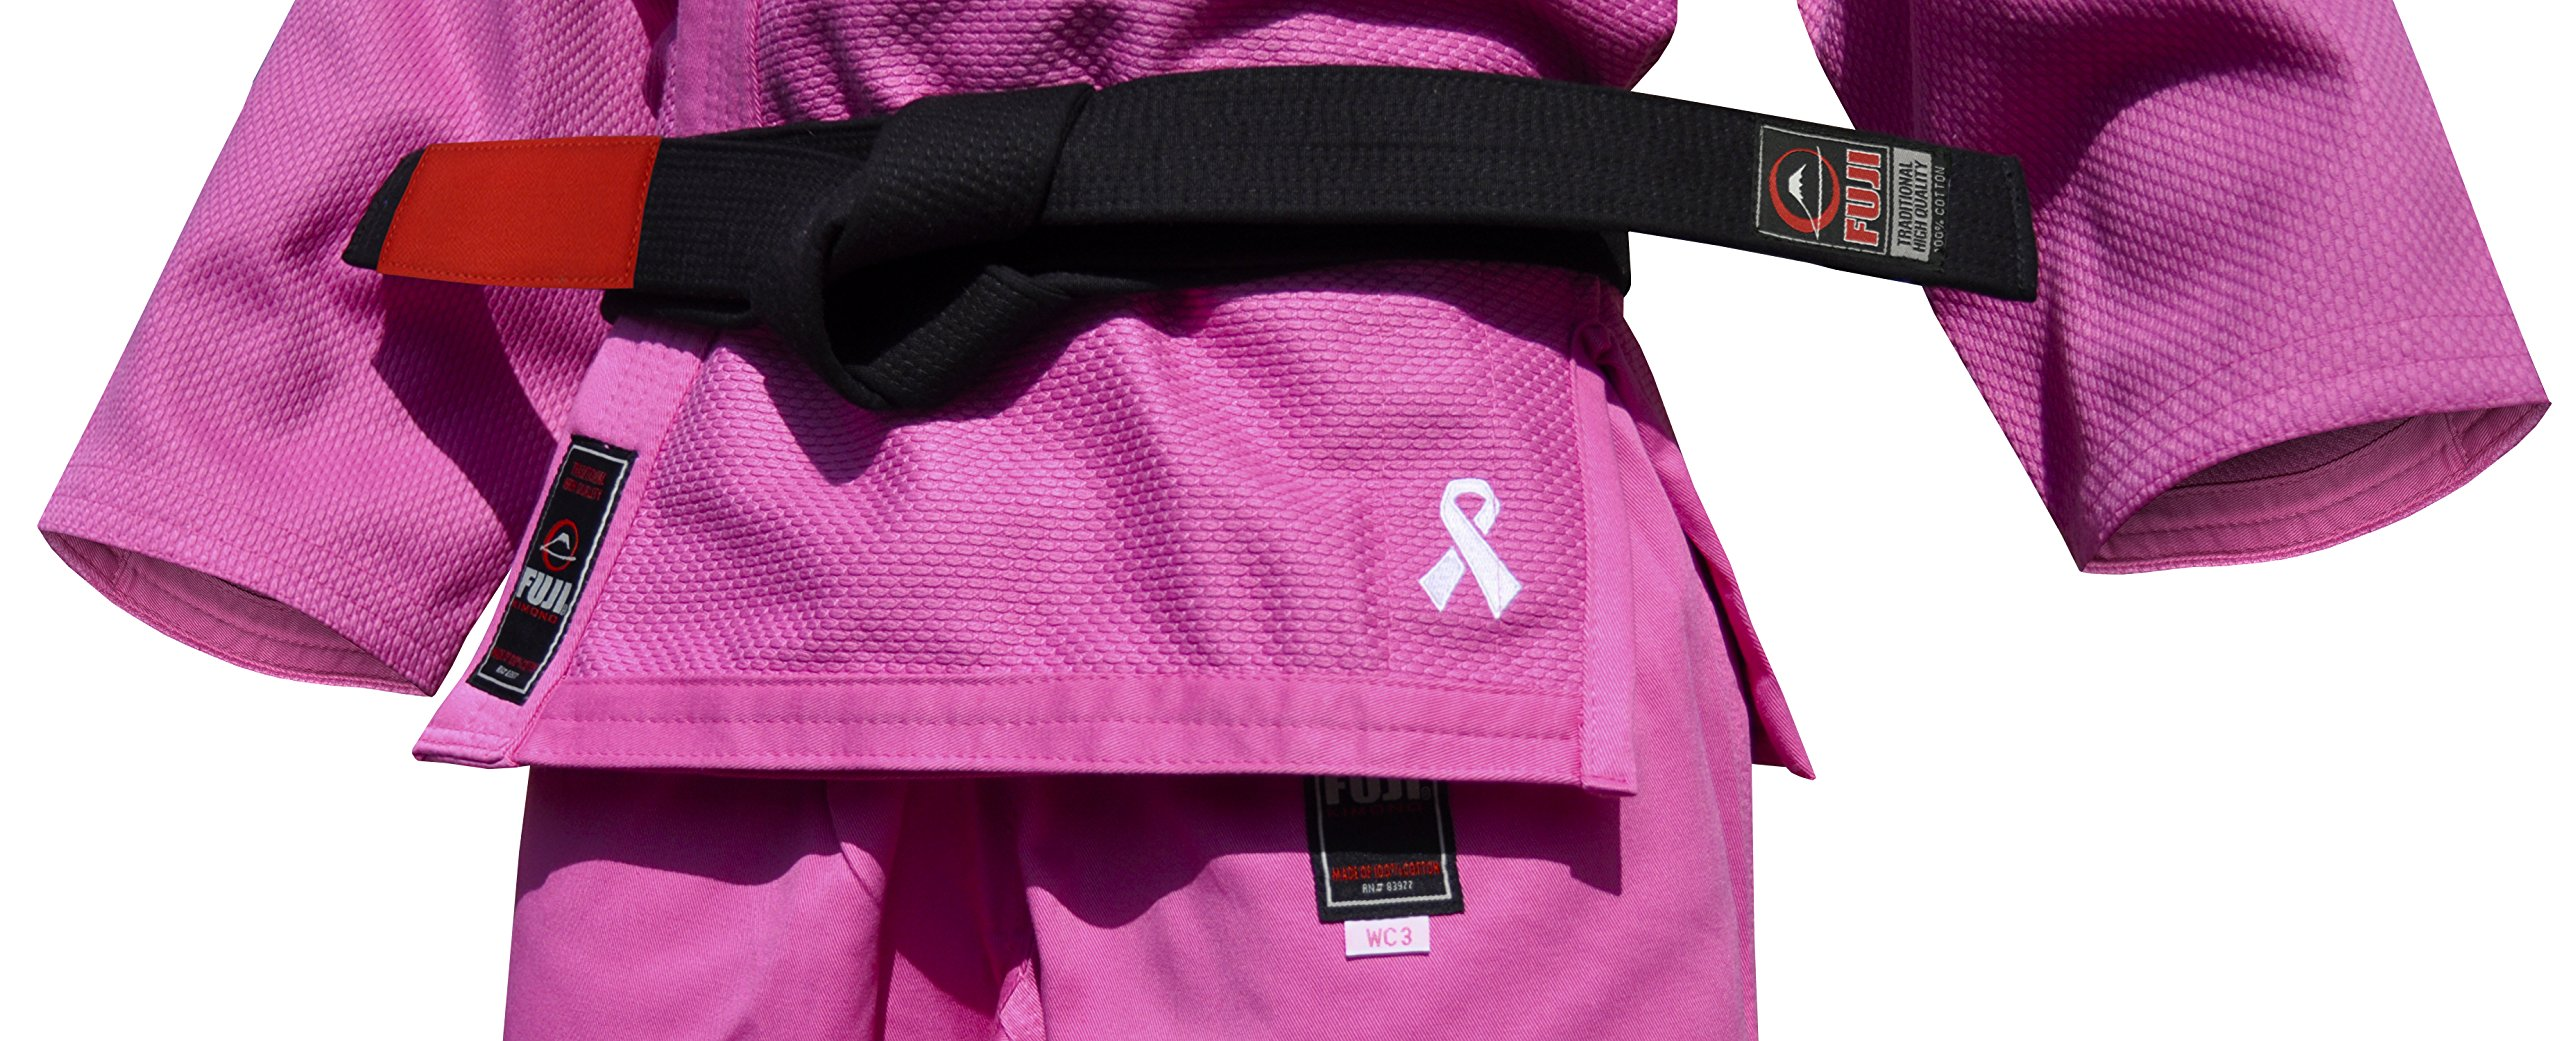 Fuji Kid's BJJ Uniform, Pink, WC0 by Fuji